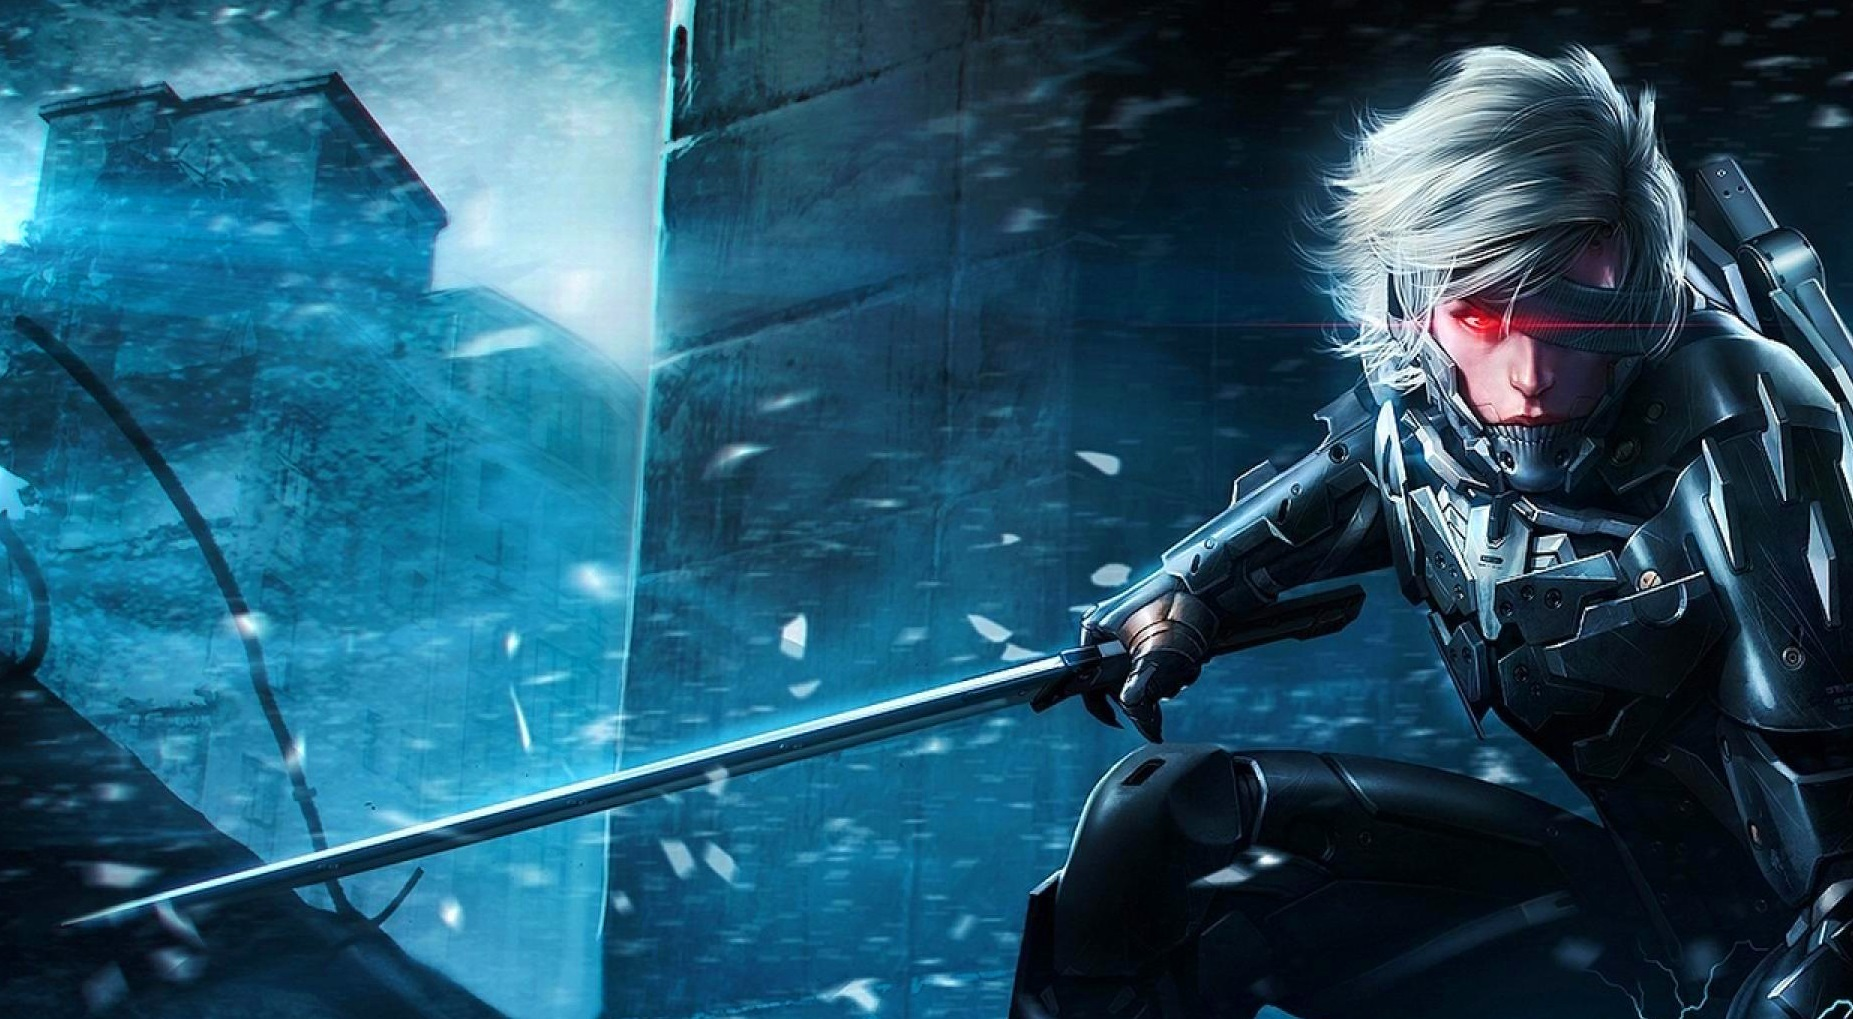 42 Hd Raiden Wallpaper On Wallpapersafari: Metal Gear Rising Revengeance Wallpaper